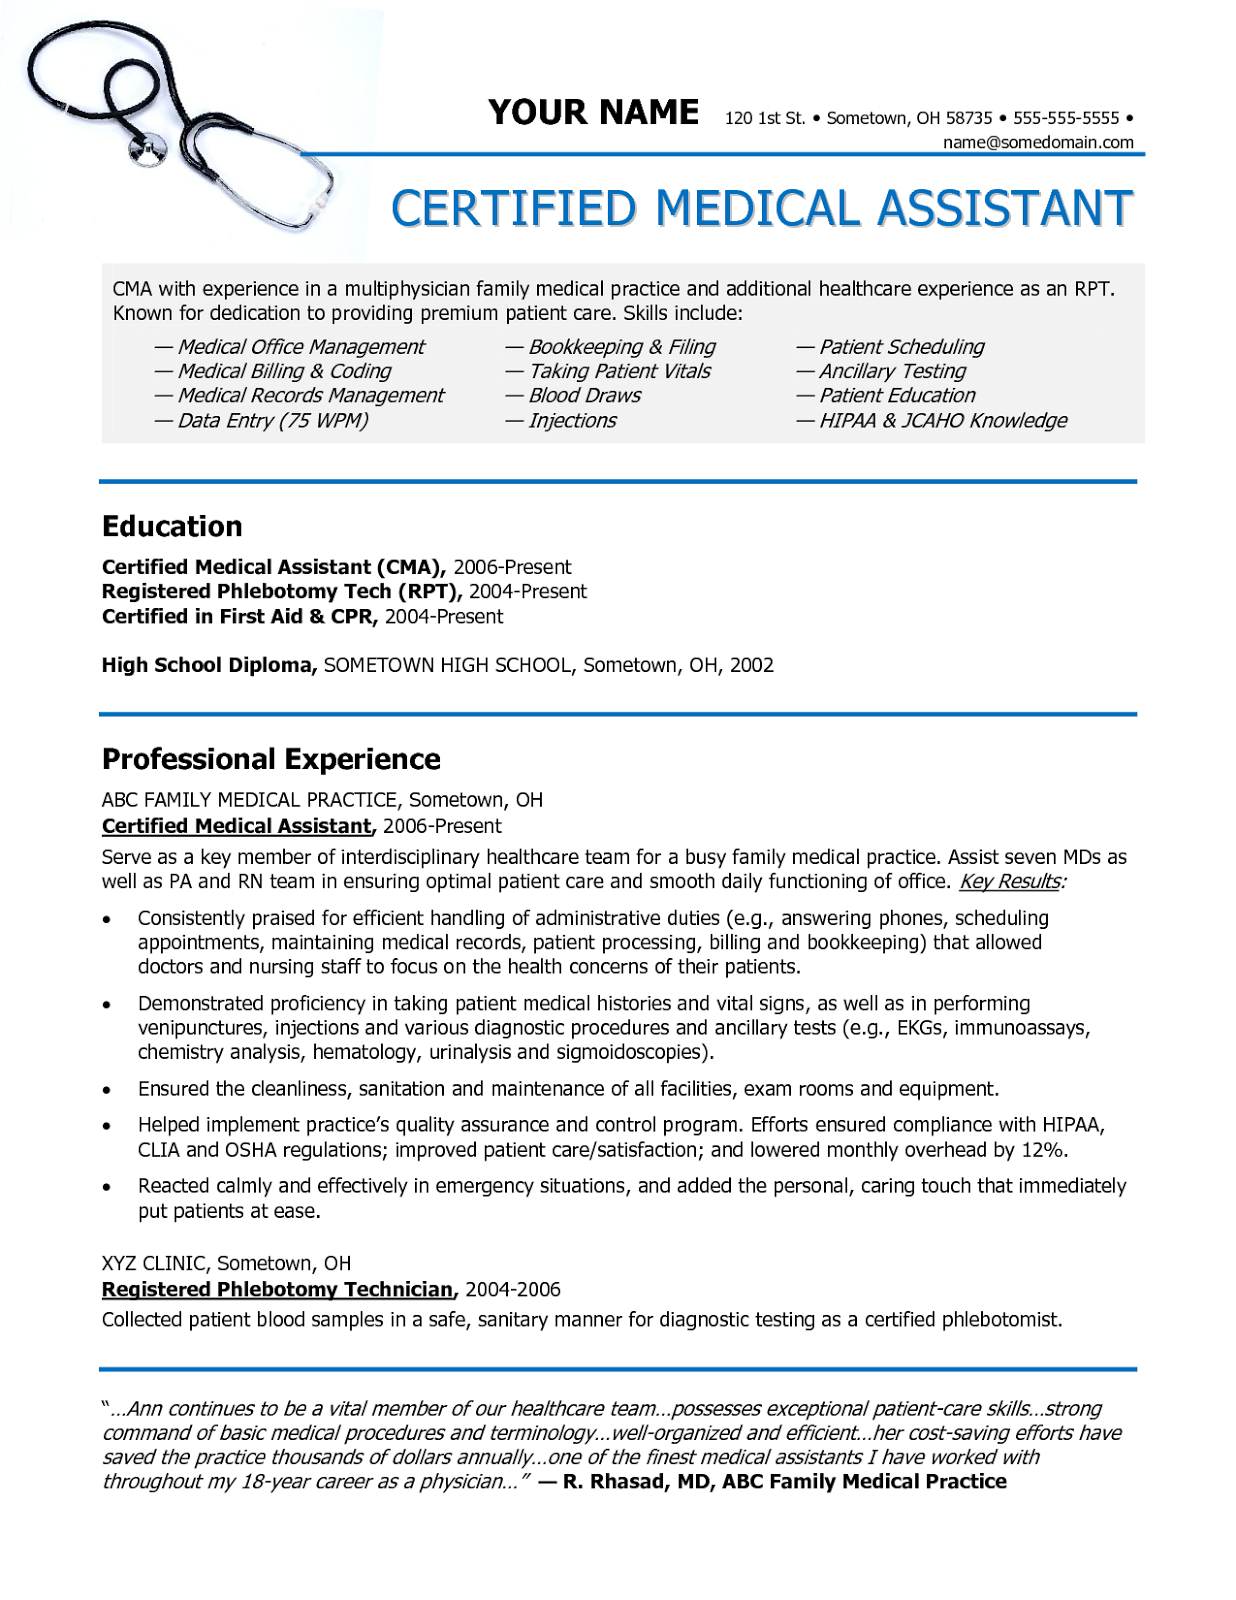 medical position resume resume samples writing guides for medical position resume medical assistant resume samples and objective statements sample of a medical assistant resume